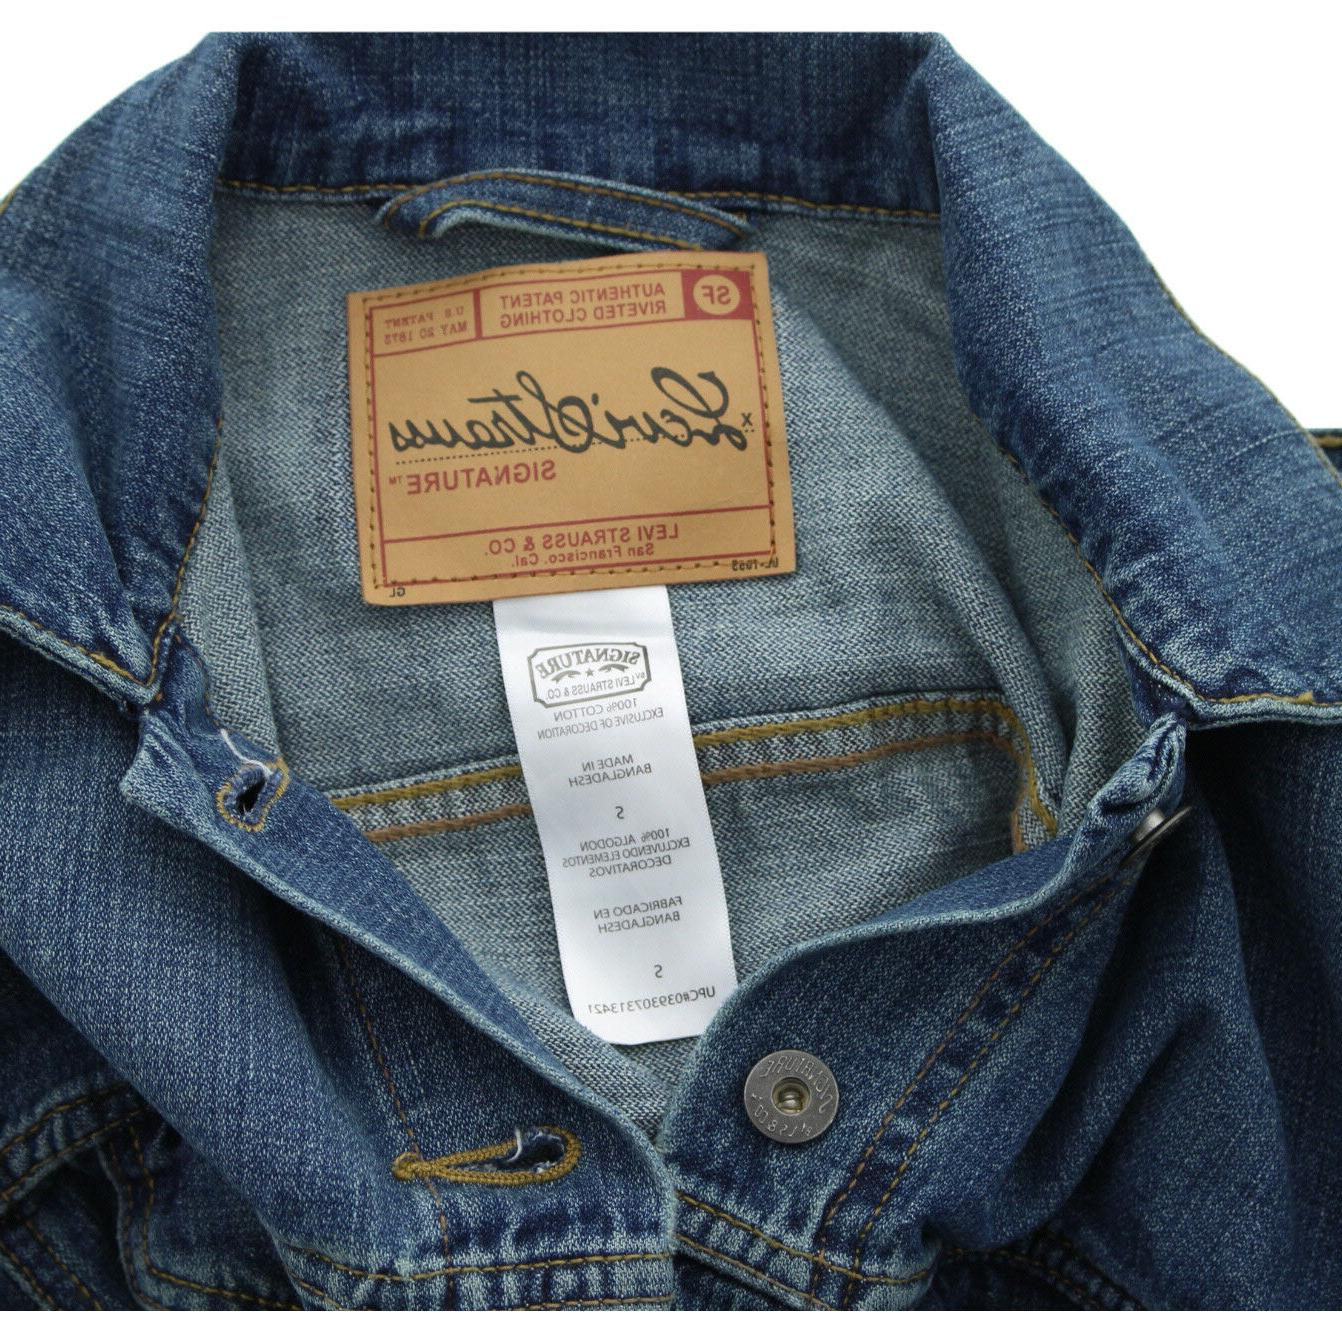 Levi's Jean Jackets, Strauss Signature Denim